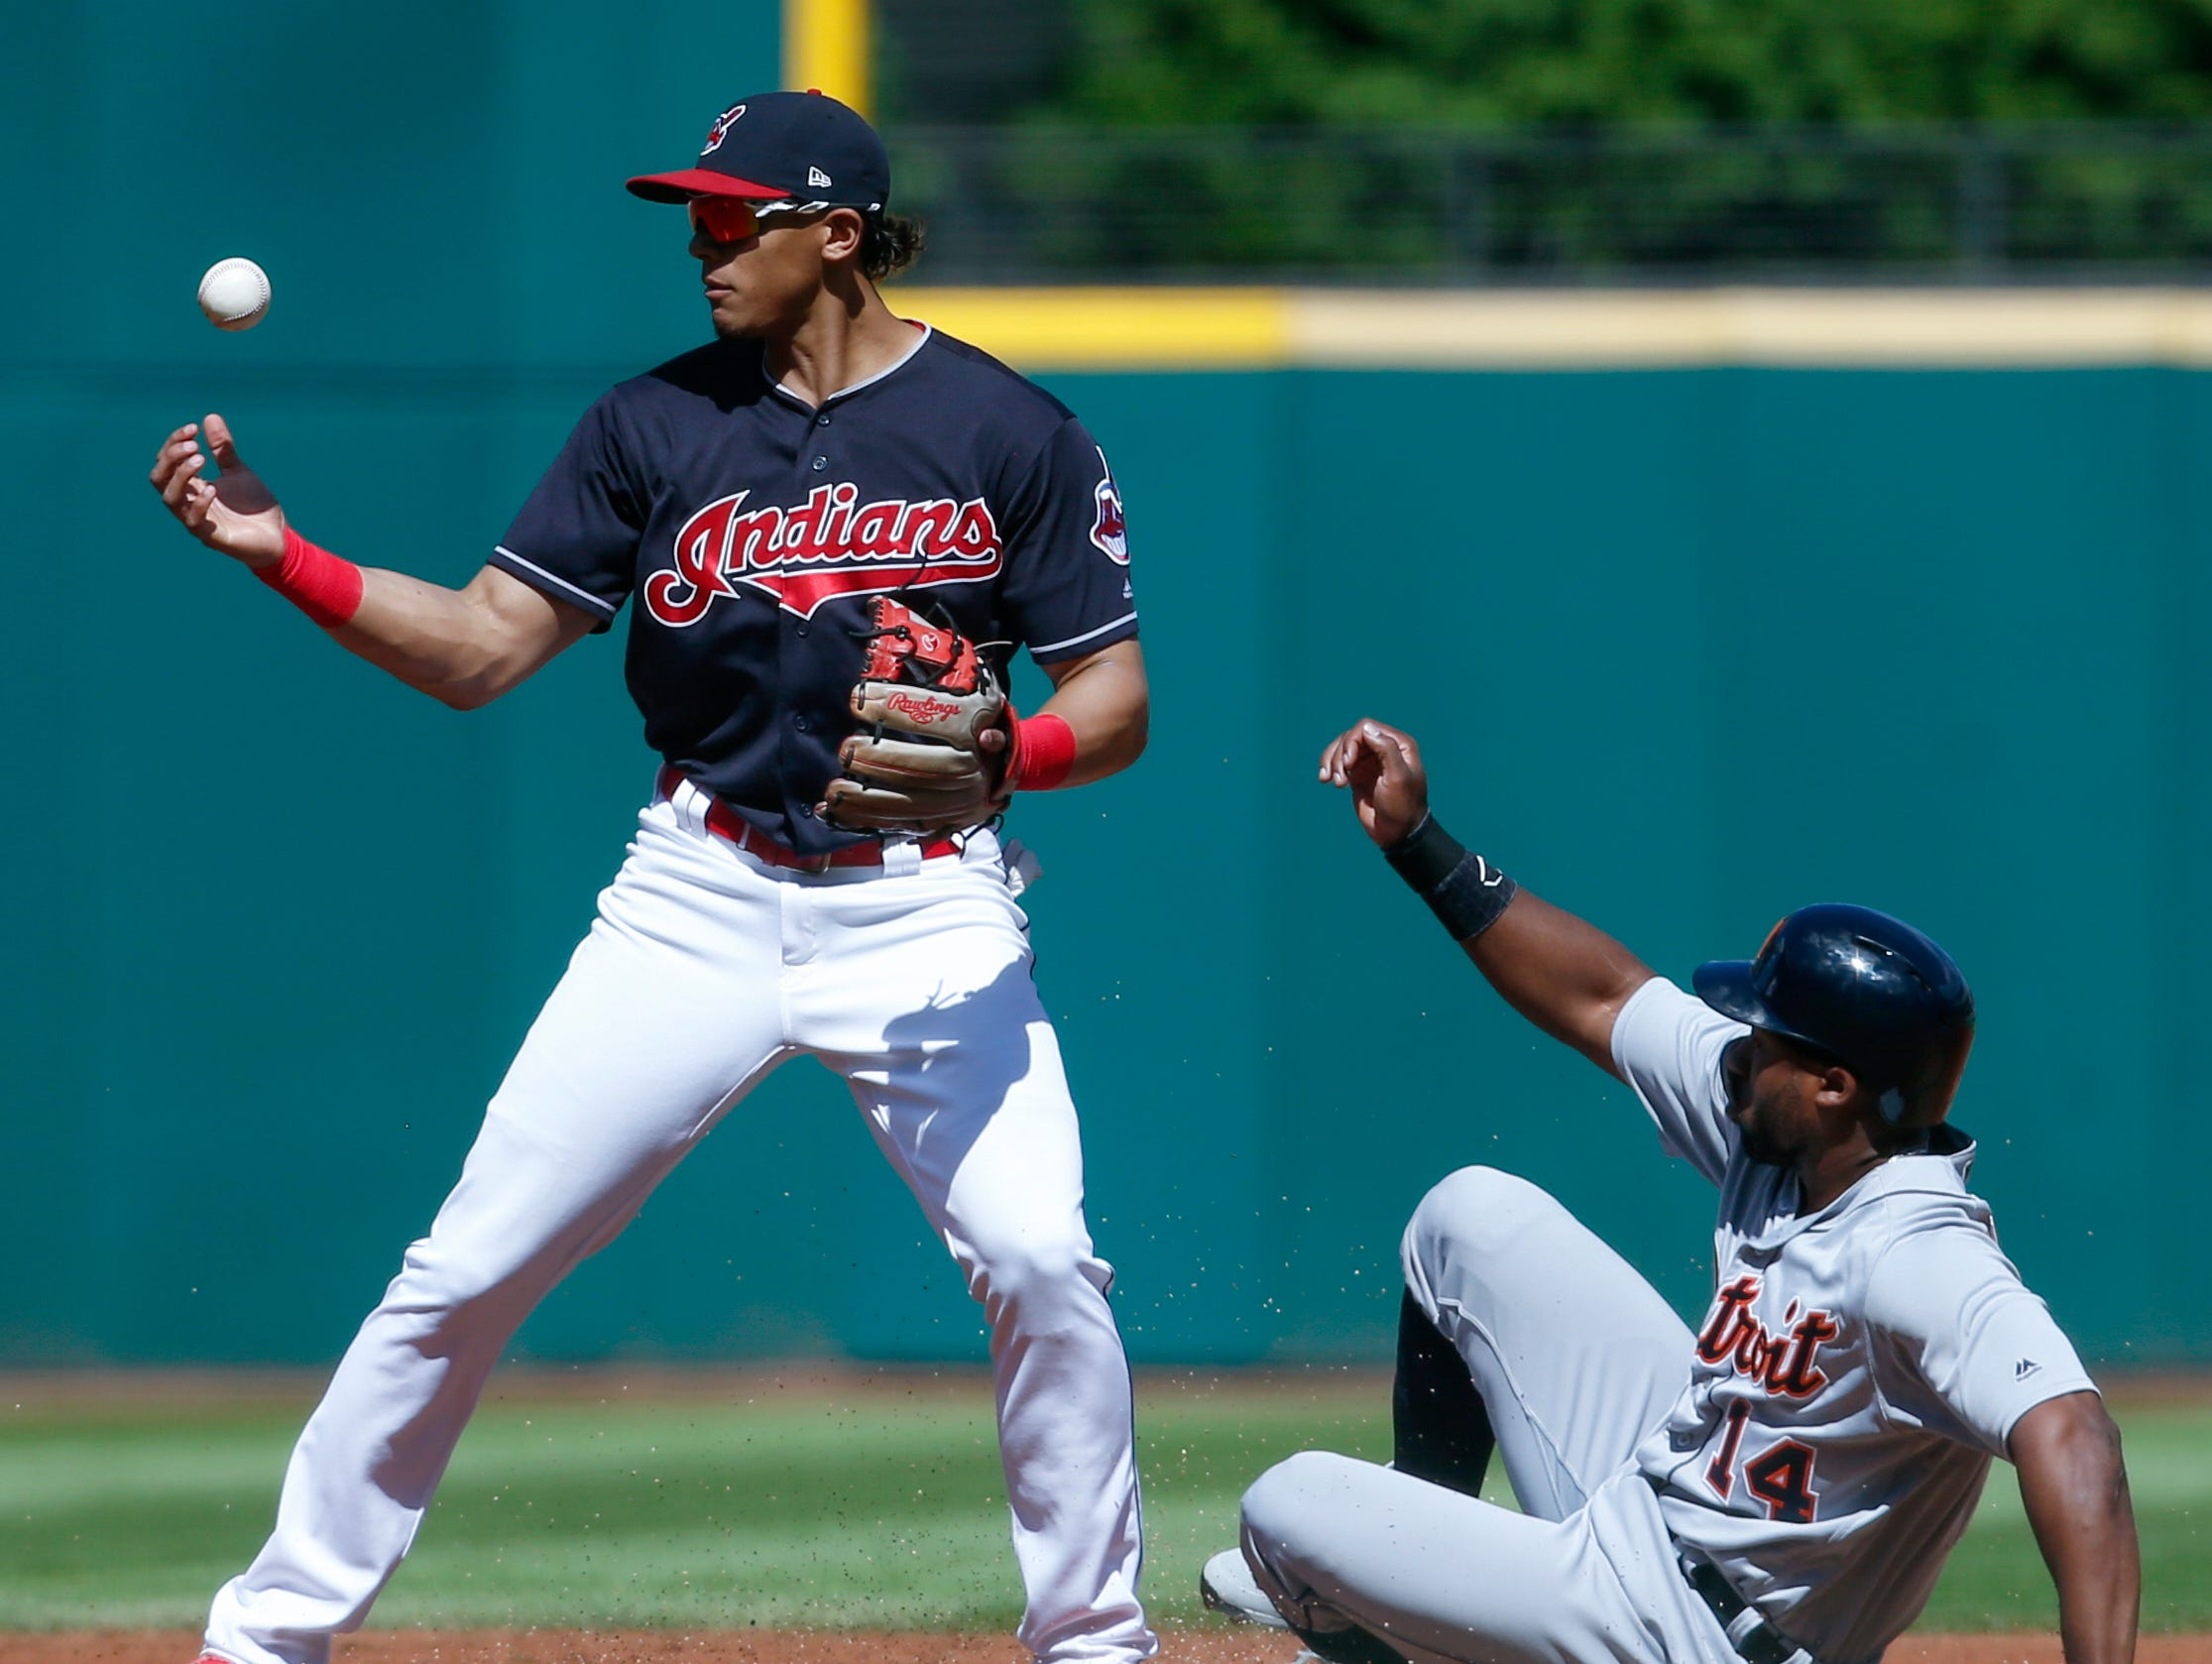 Indians shortstop Erik Gonzalez, left, forces out Tigers left fielder Christin Stewart at second base but then misplays the throw on a ball hit by Nicholas Castellanos during the first inning on Sunday, Sept. 16, 2018, in Cleveland.